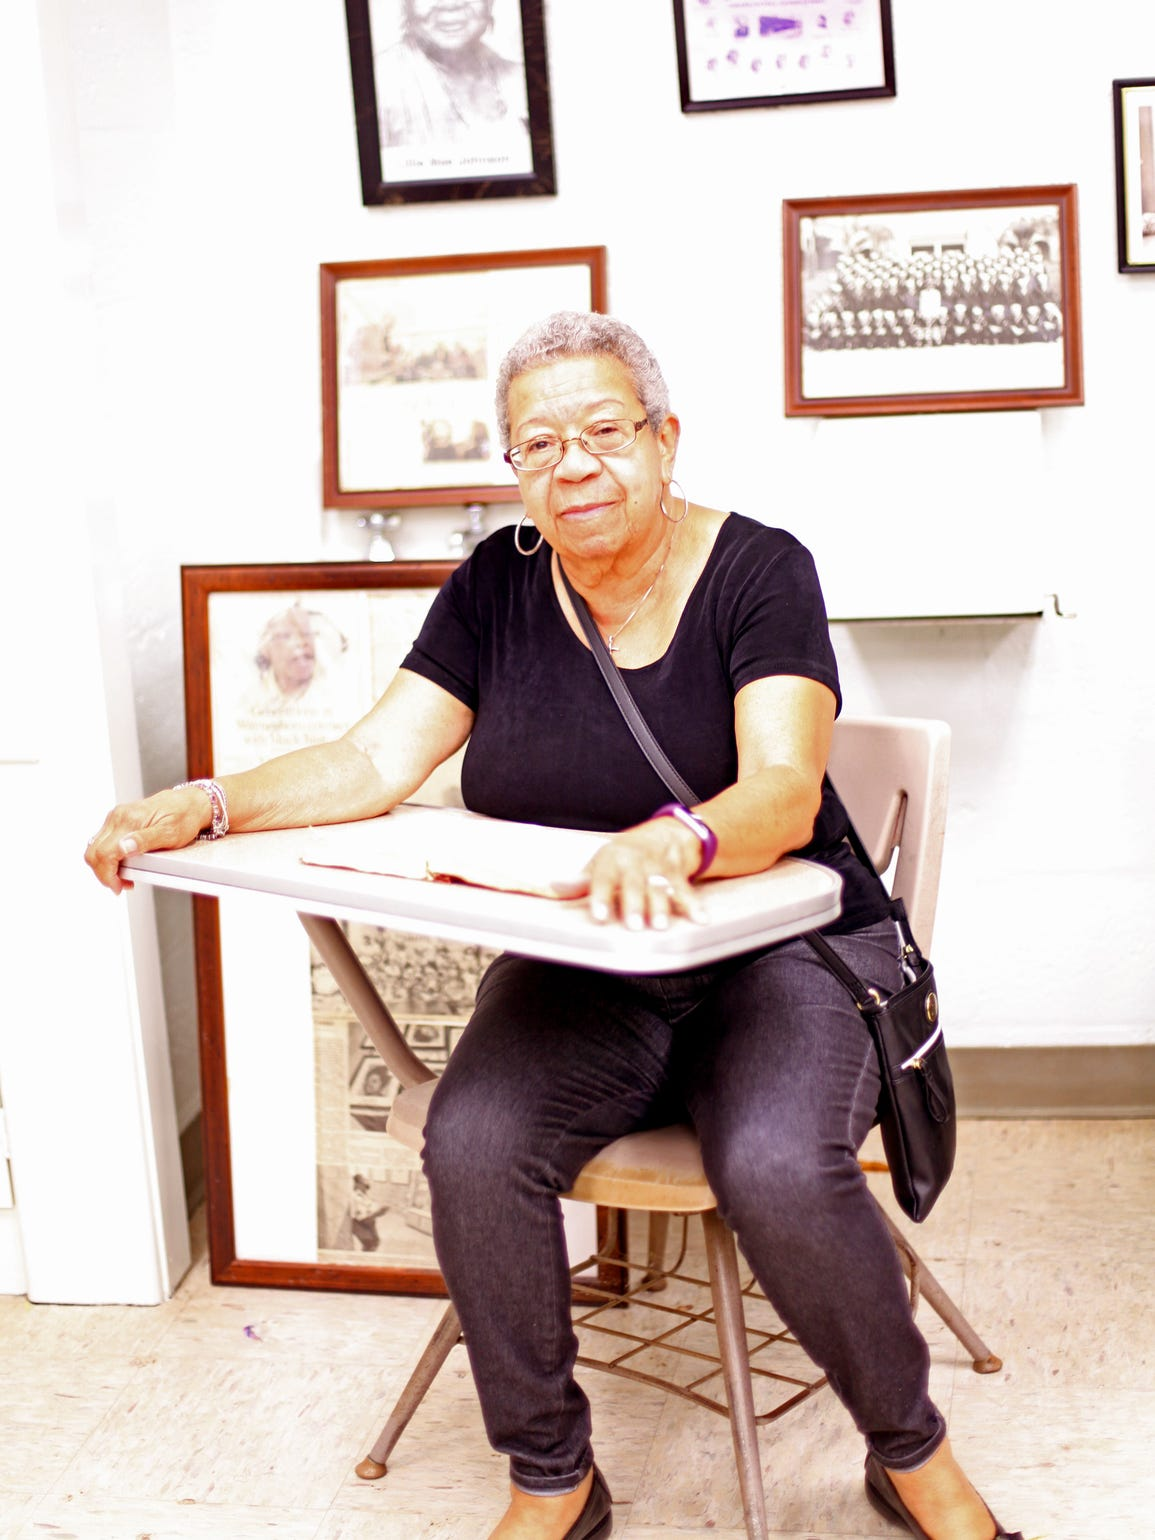 Charlotte Redd Wood sits in an old desk from Rosenwald